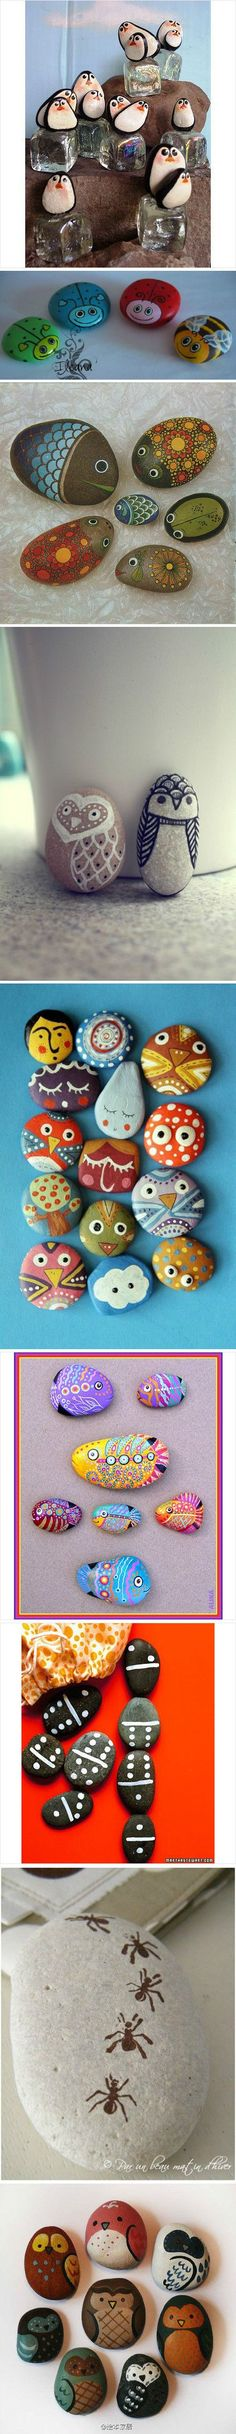 rocks... thought this would be a cool craft idea to do with the kiddos i )